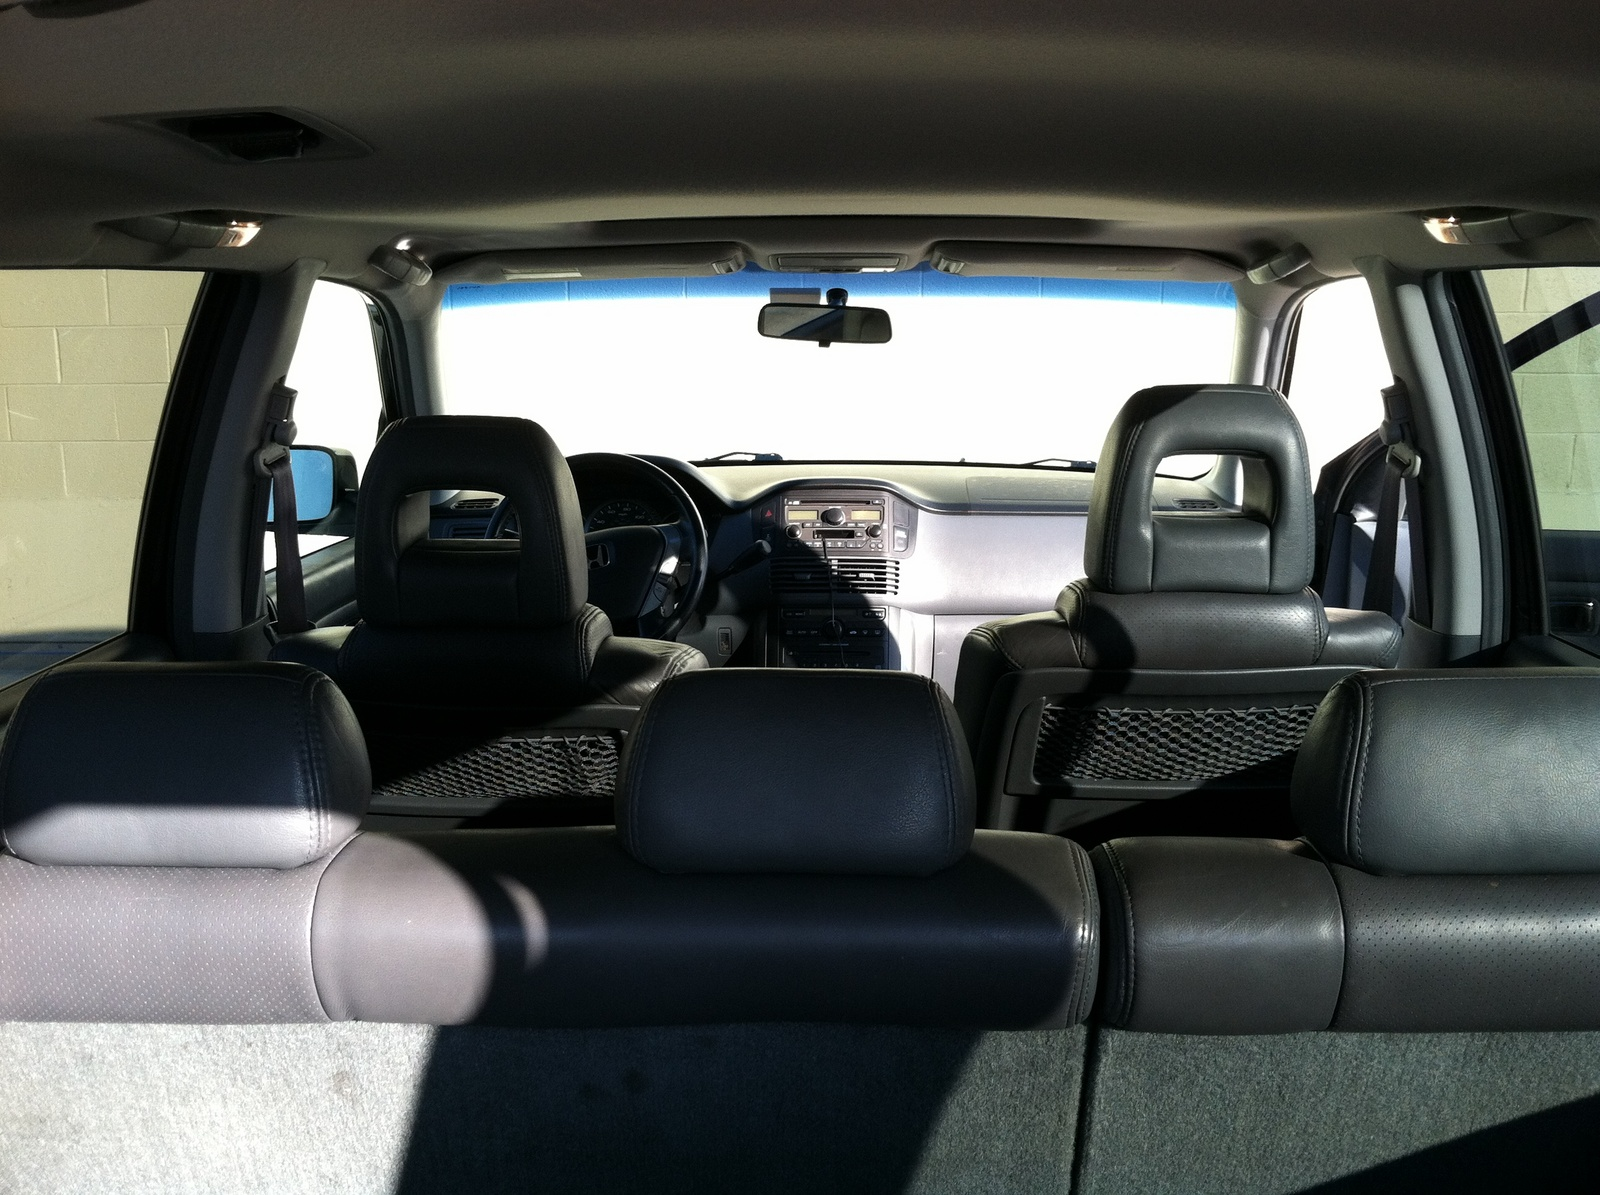 photos of honda pilot photo galleries on flipacars. Black Bedroom Furniture Sets. Home Design Ideas